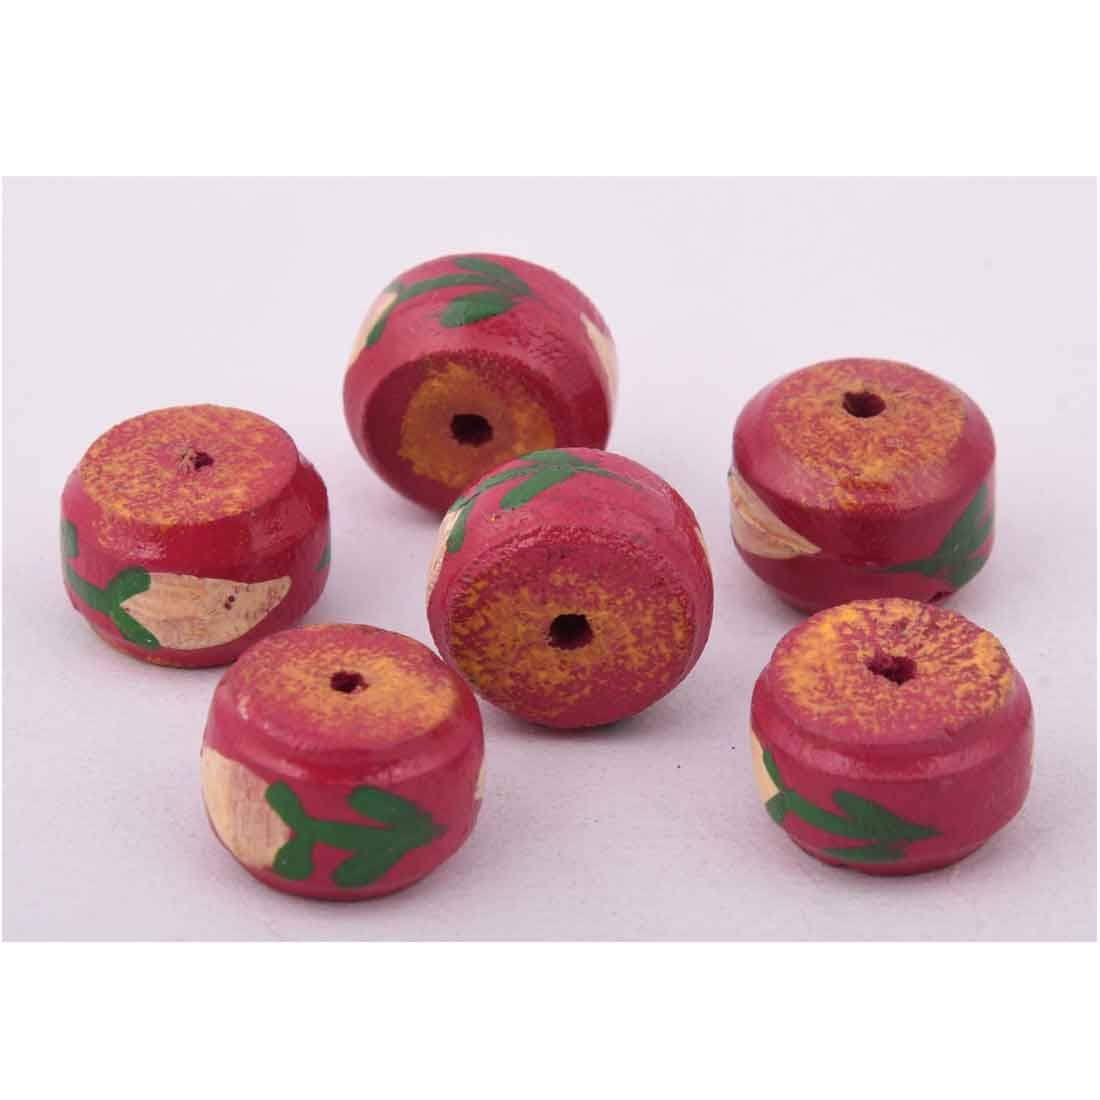 Beads India 1700088 Handcrafted Wooden Beads/Discounts Above 500 pcs